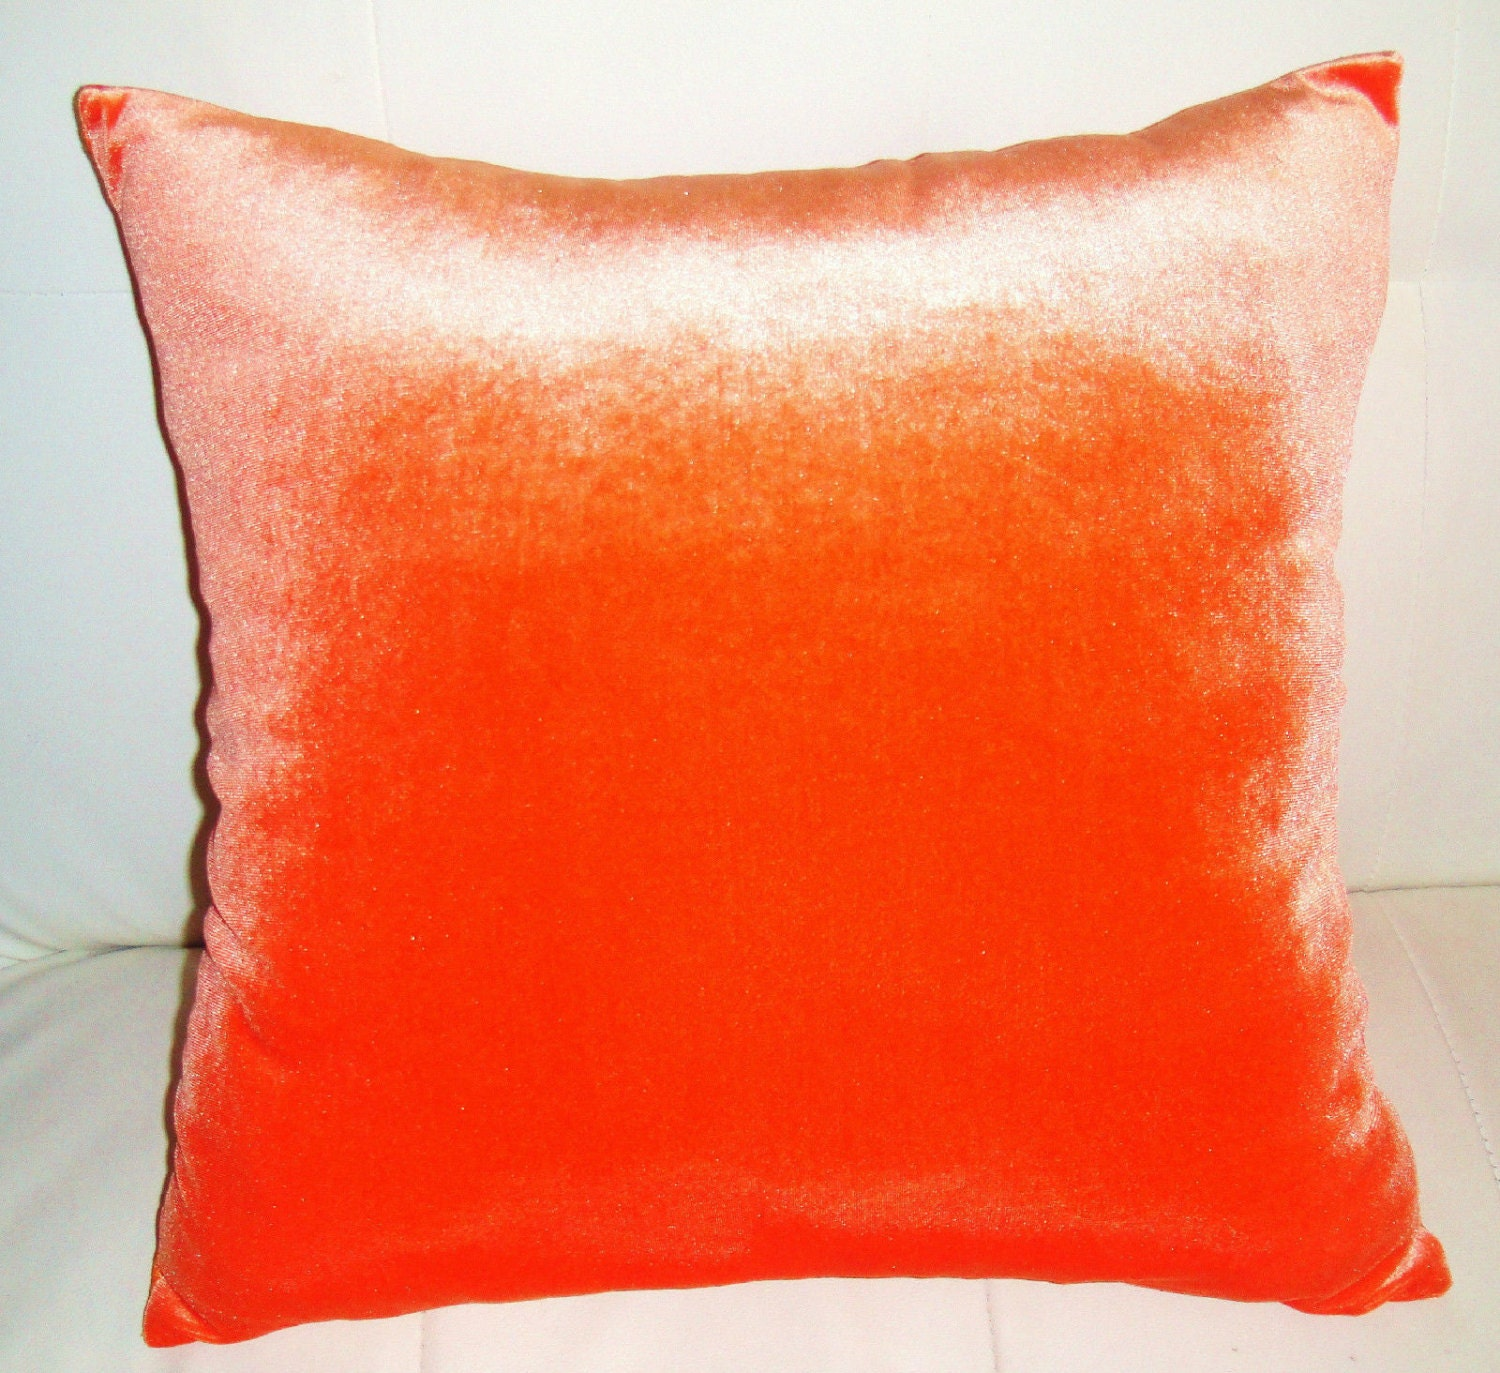 Orange Velvet Pillow 18x18 New Decorative Soft Throw Pillow